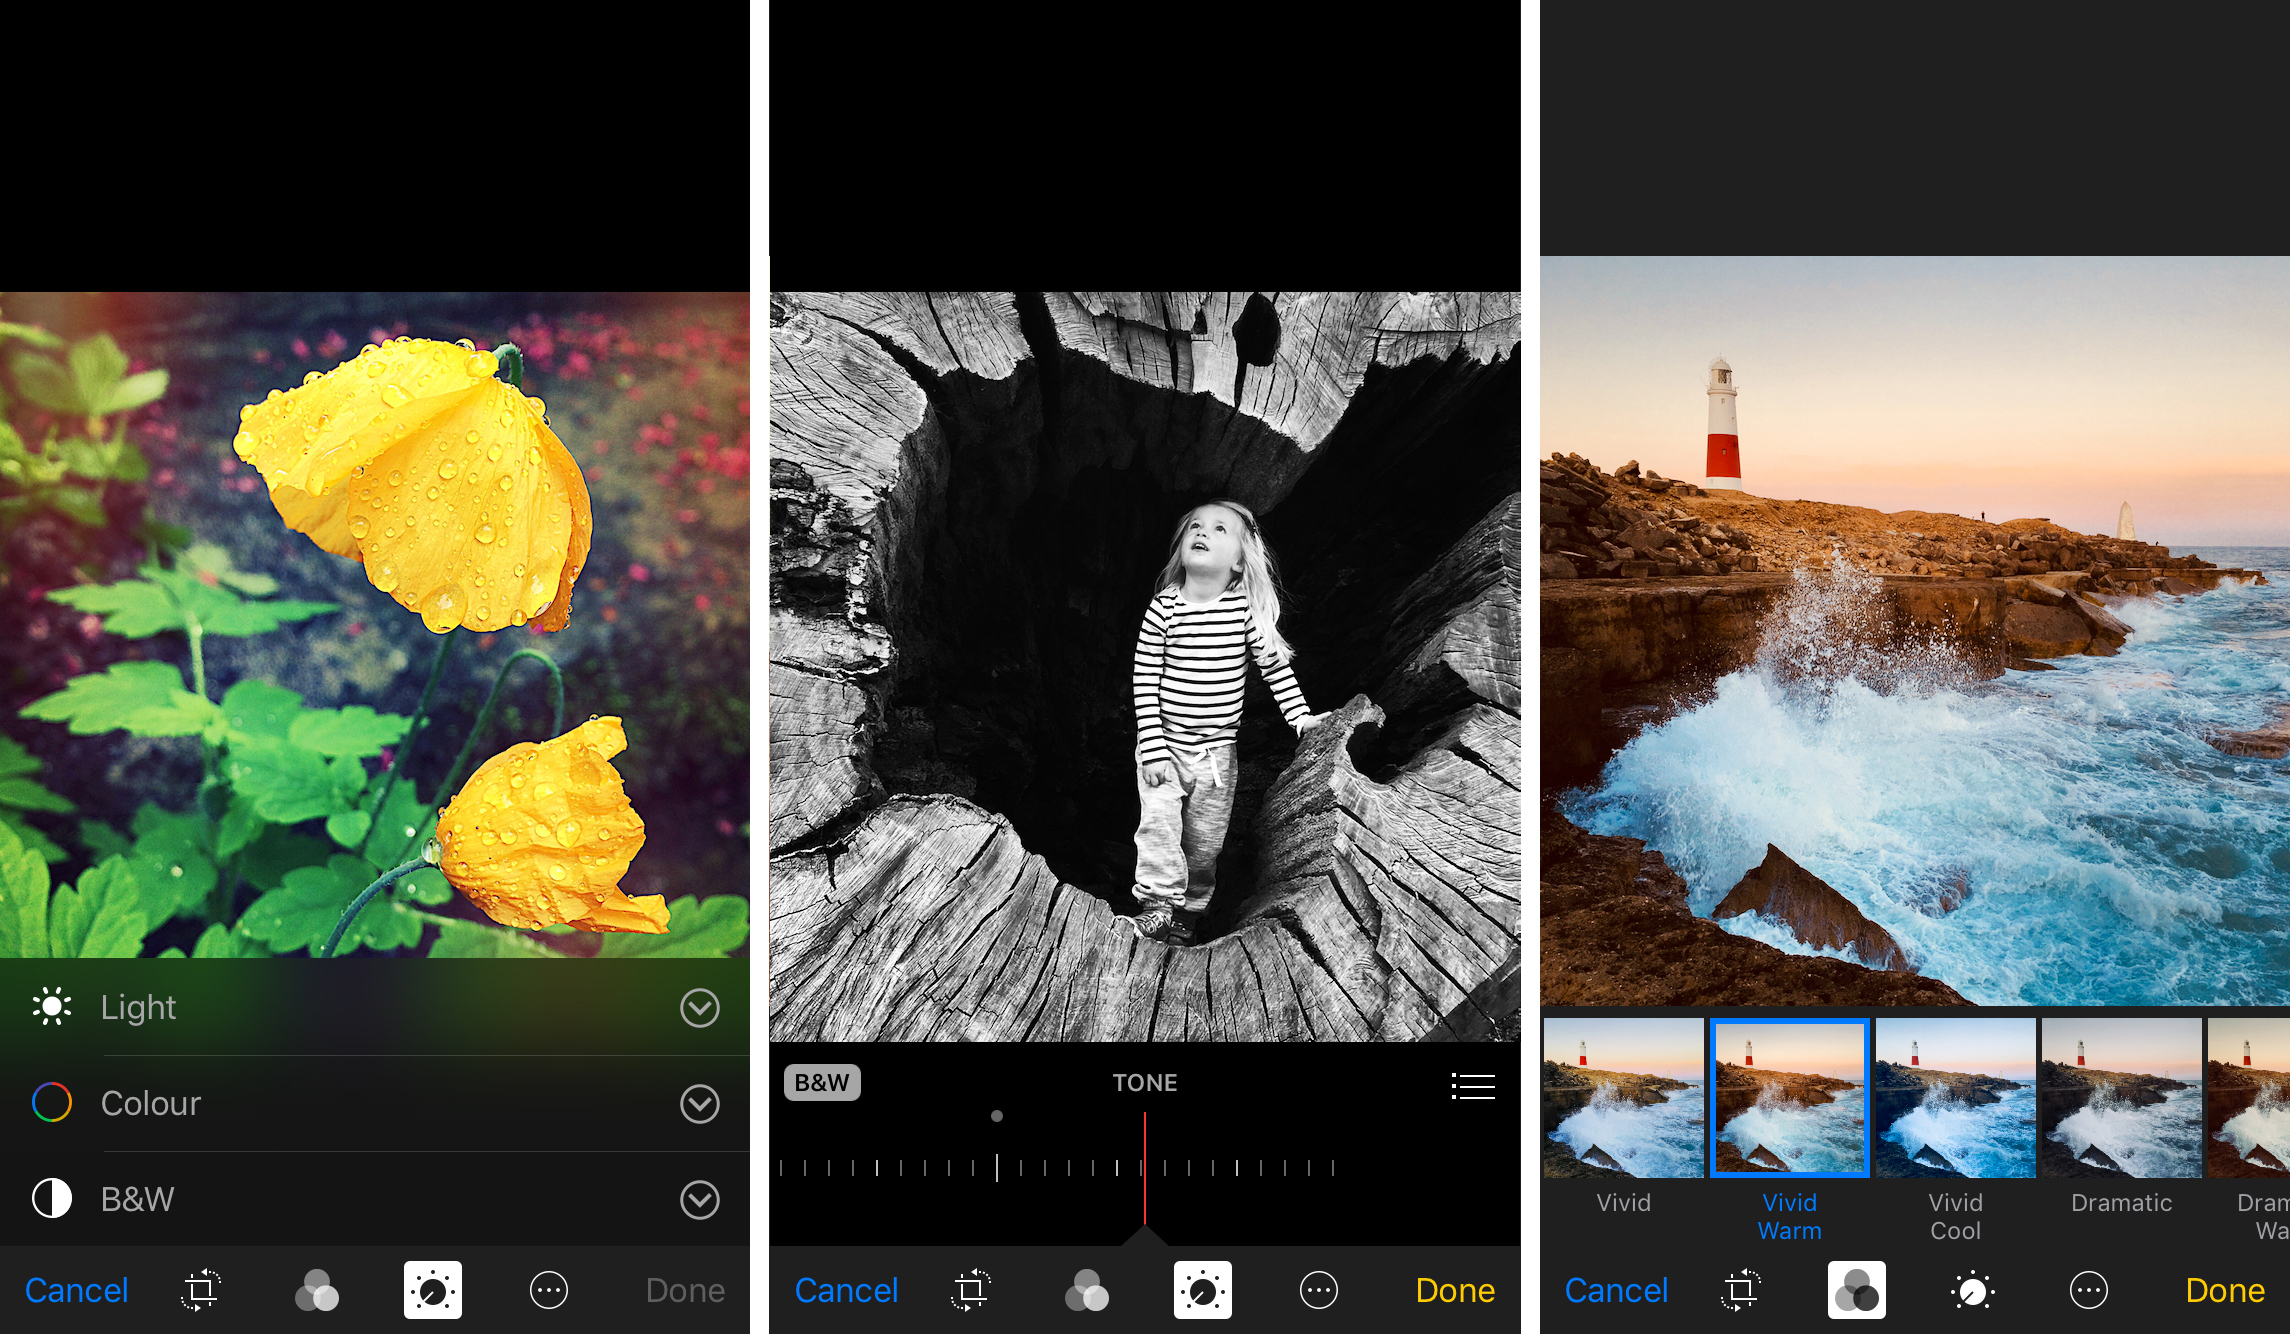 How to edit photos on iphone using the built in photos app